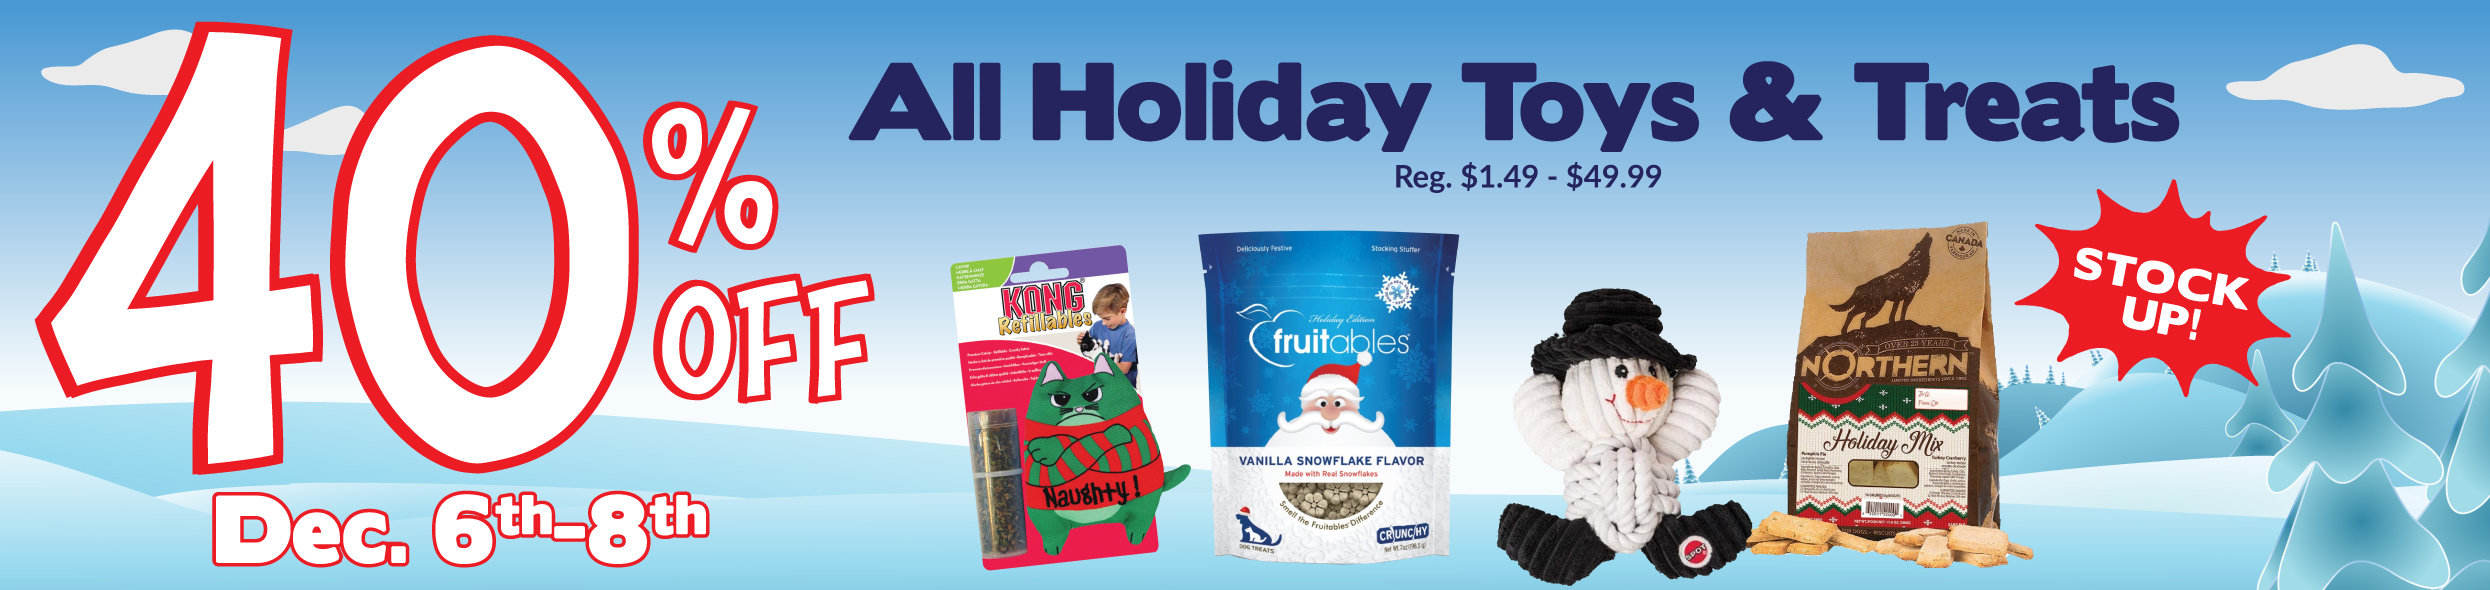 40 percent off Holiday Toys and Treats